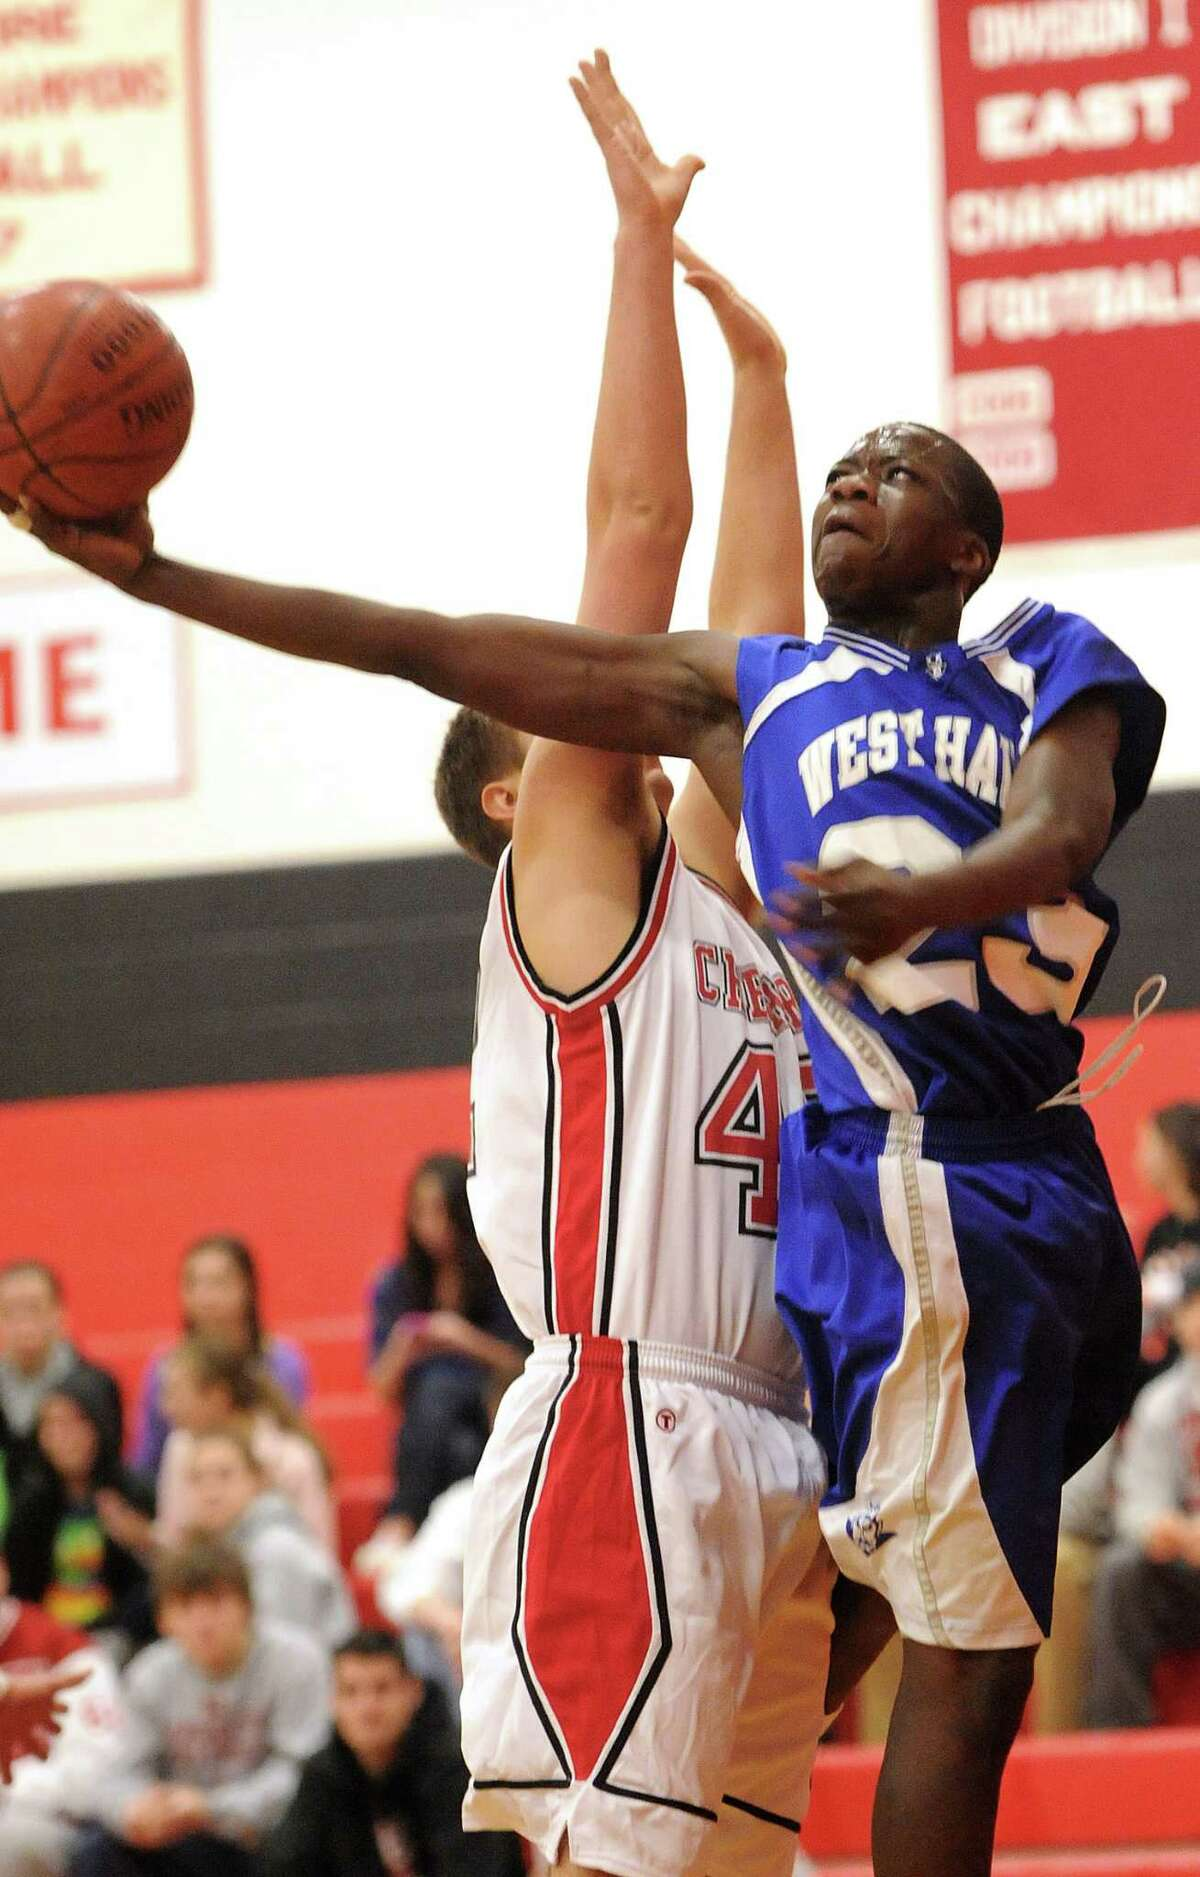 Cheshire--West Haven's Kadialy Toure gets the shot off as Cheshire's Gil Lassen defends. Photo by Brad Horrigan/New Haven Register-12.30.10.